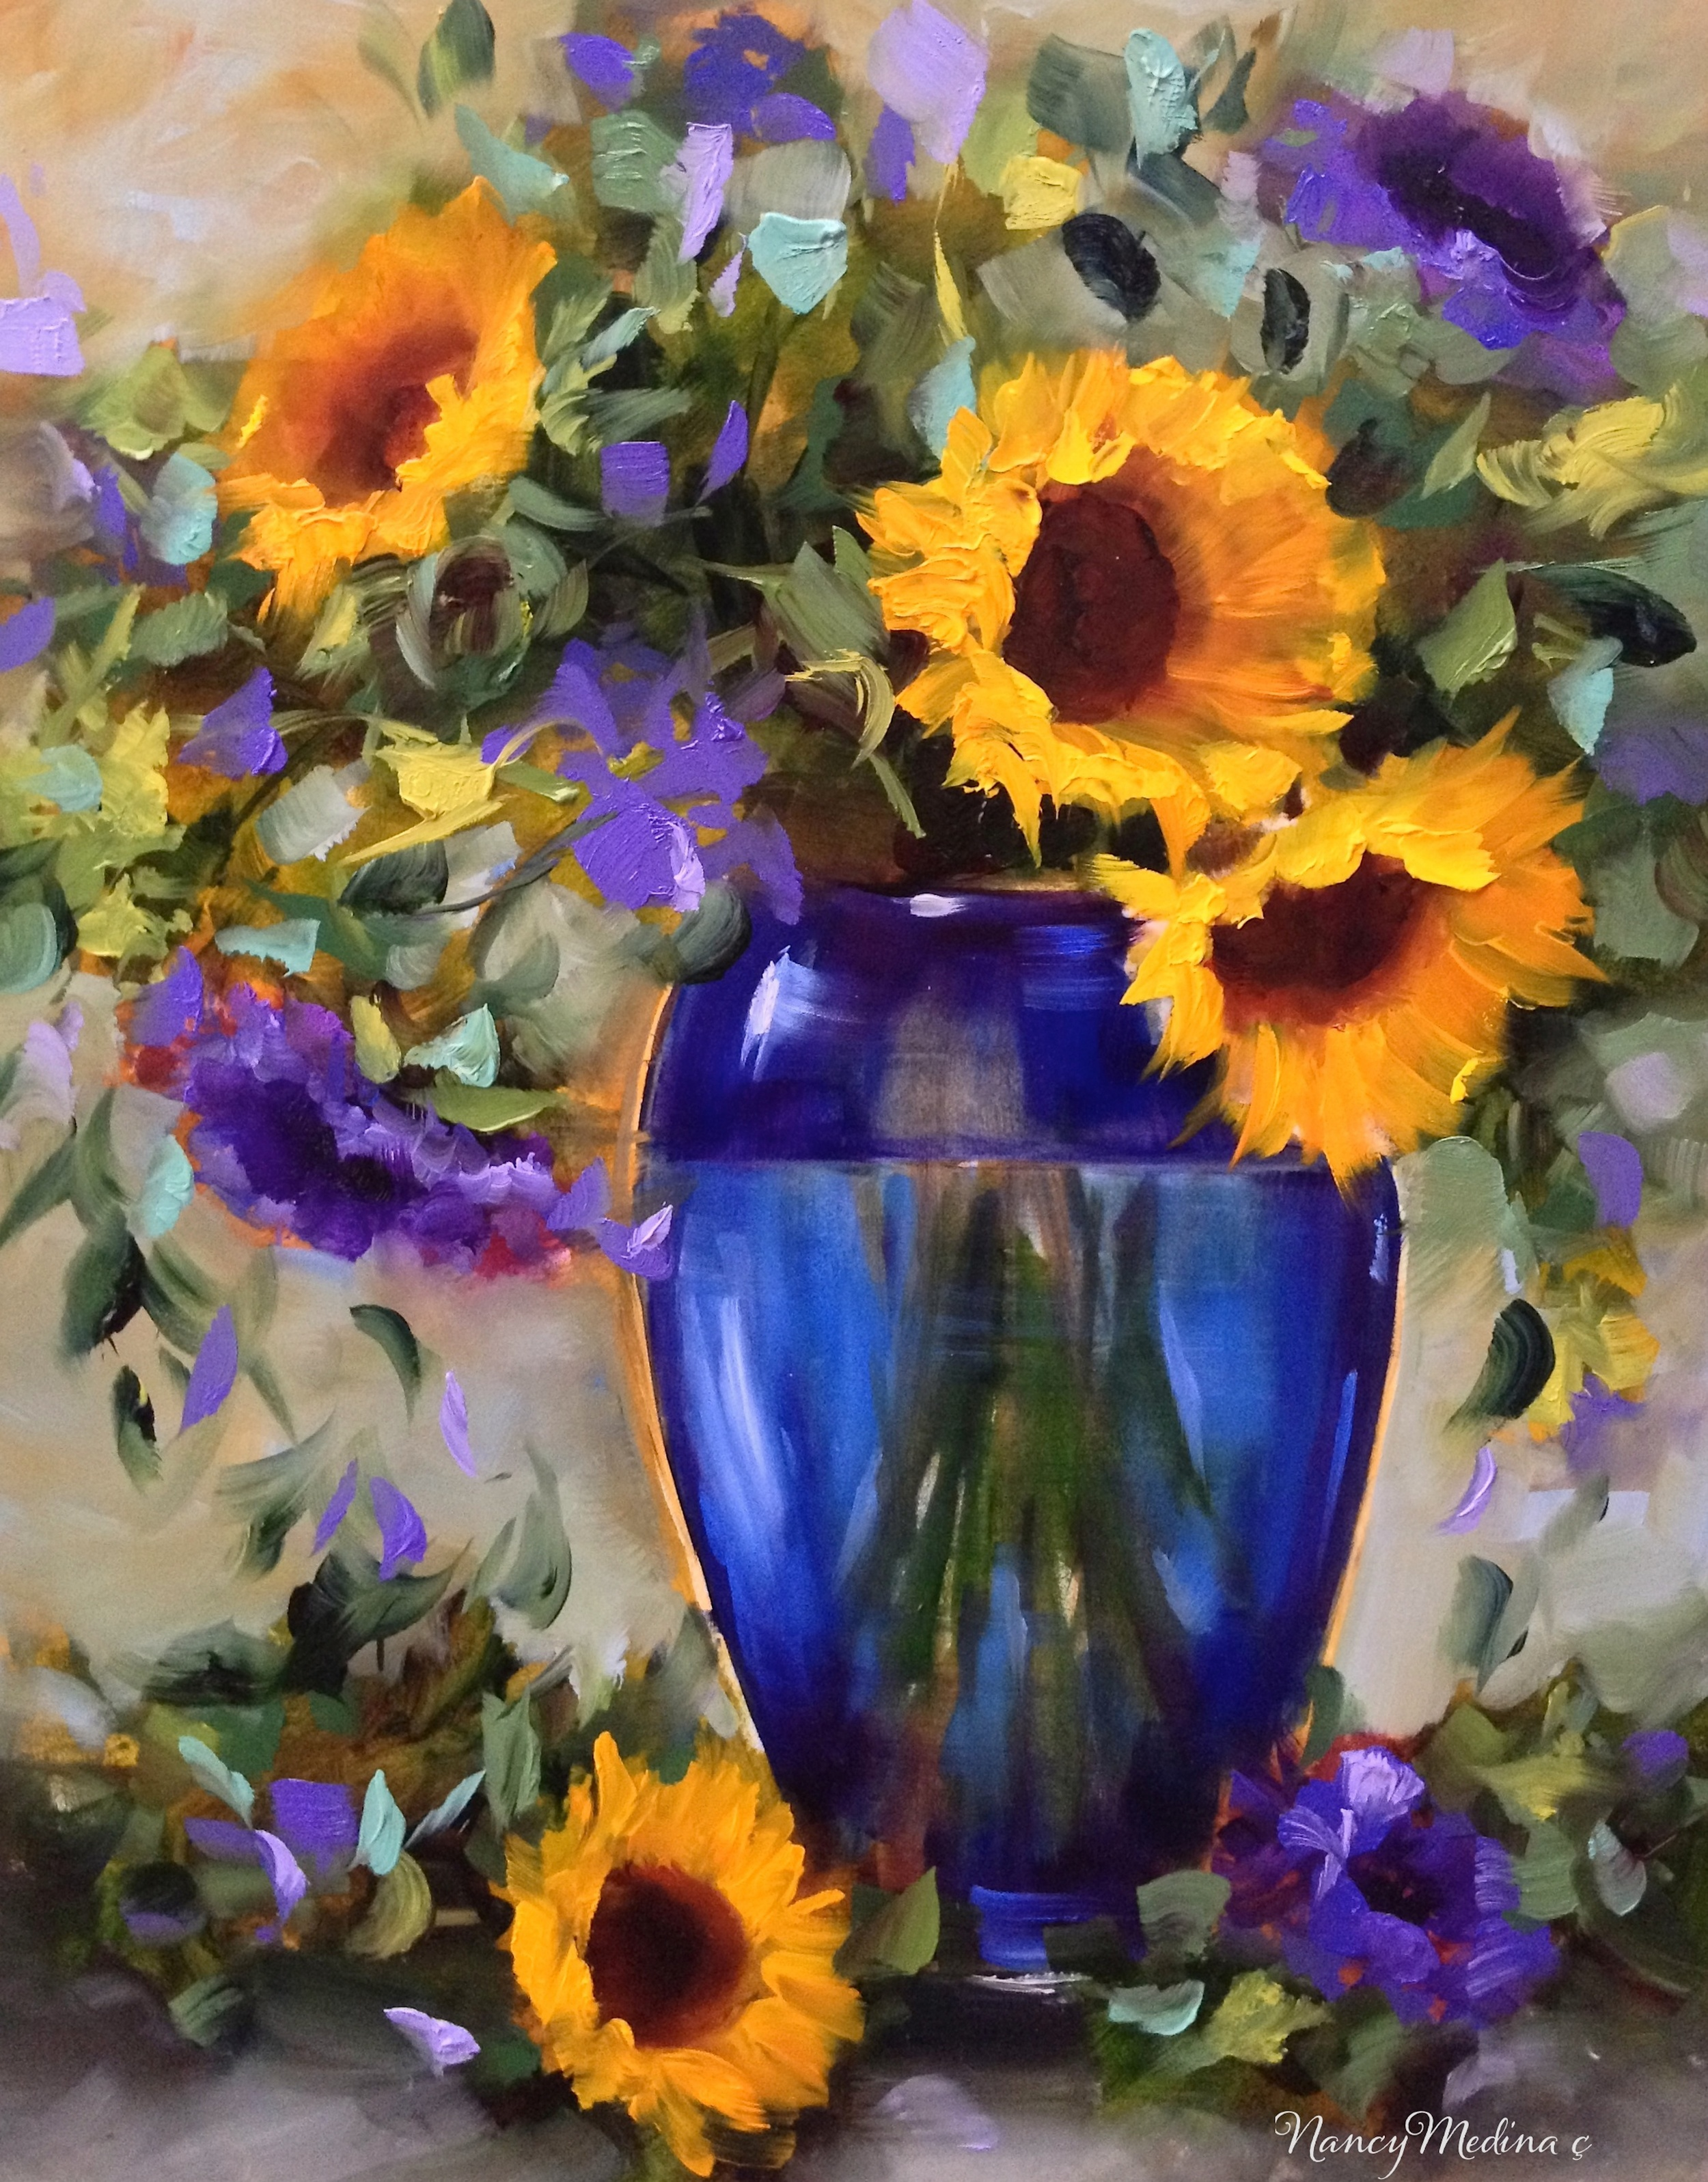 Nancy Medina  Purple Rain Yellow Sunflowers  20X16  Oil on Panel